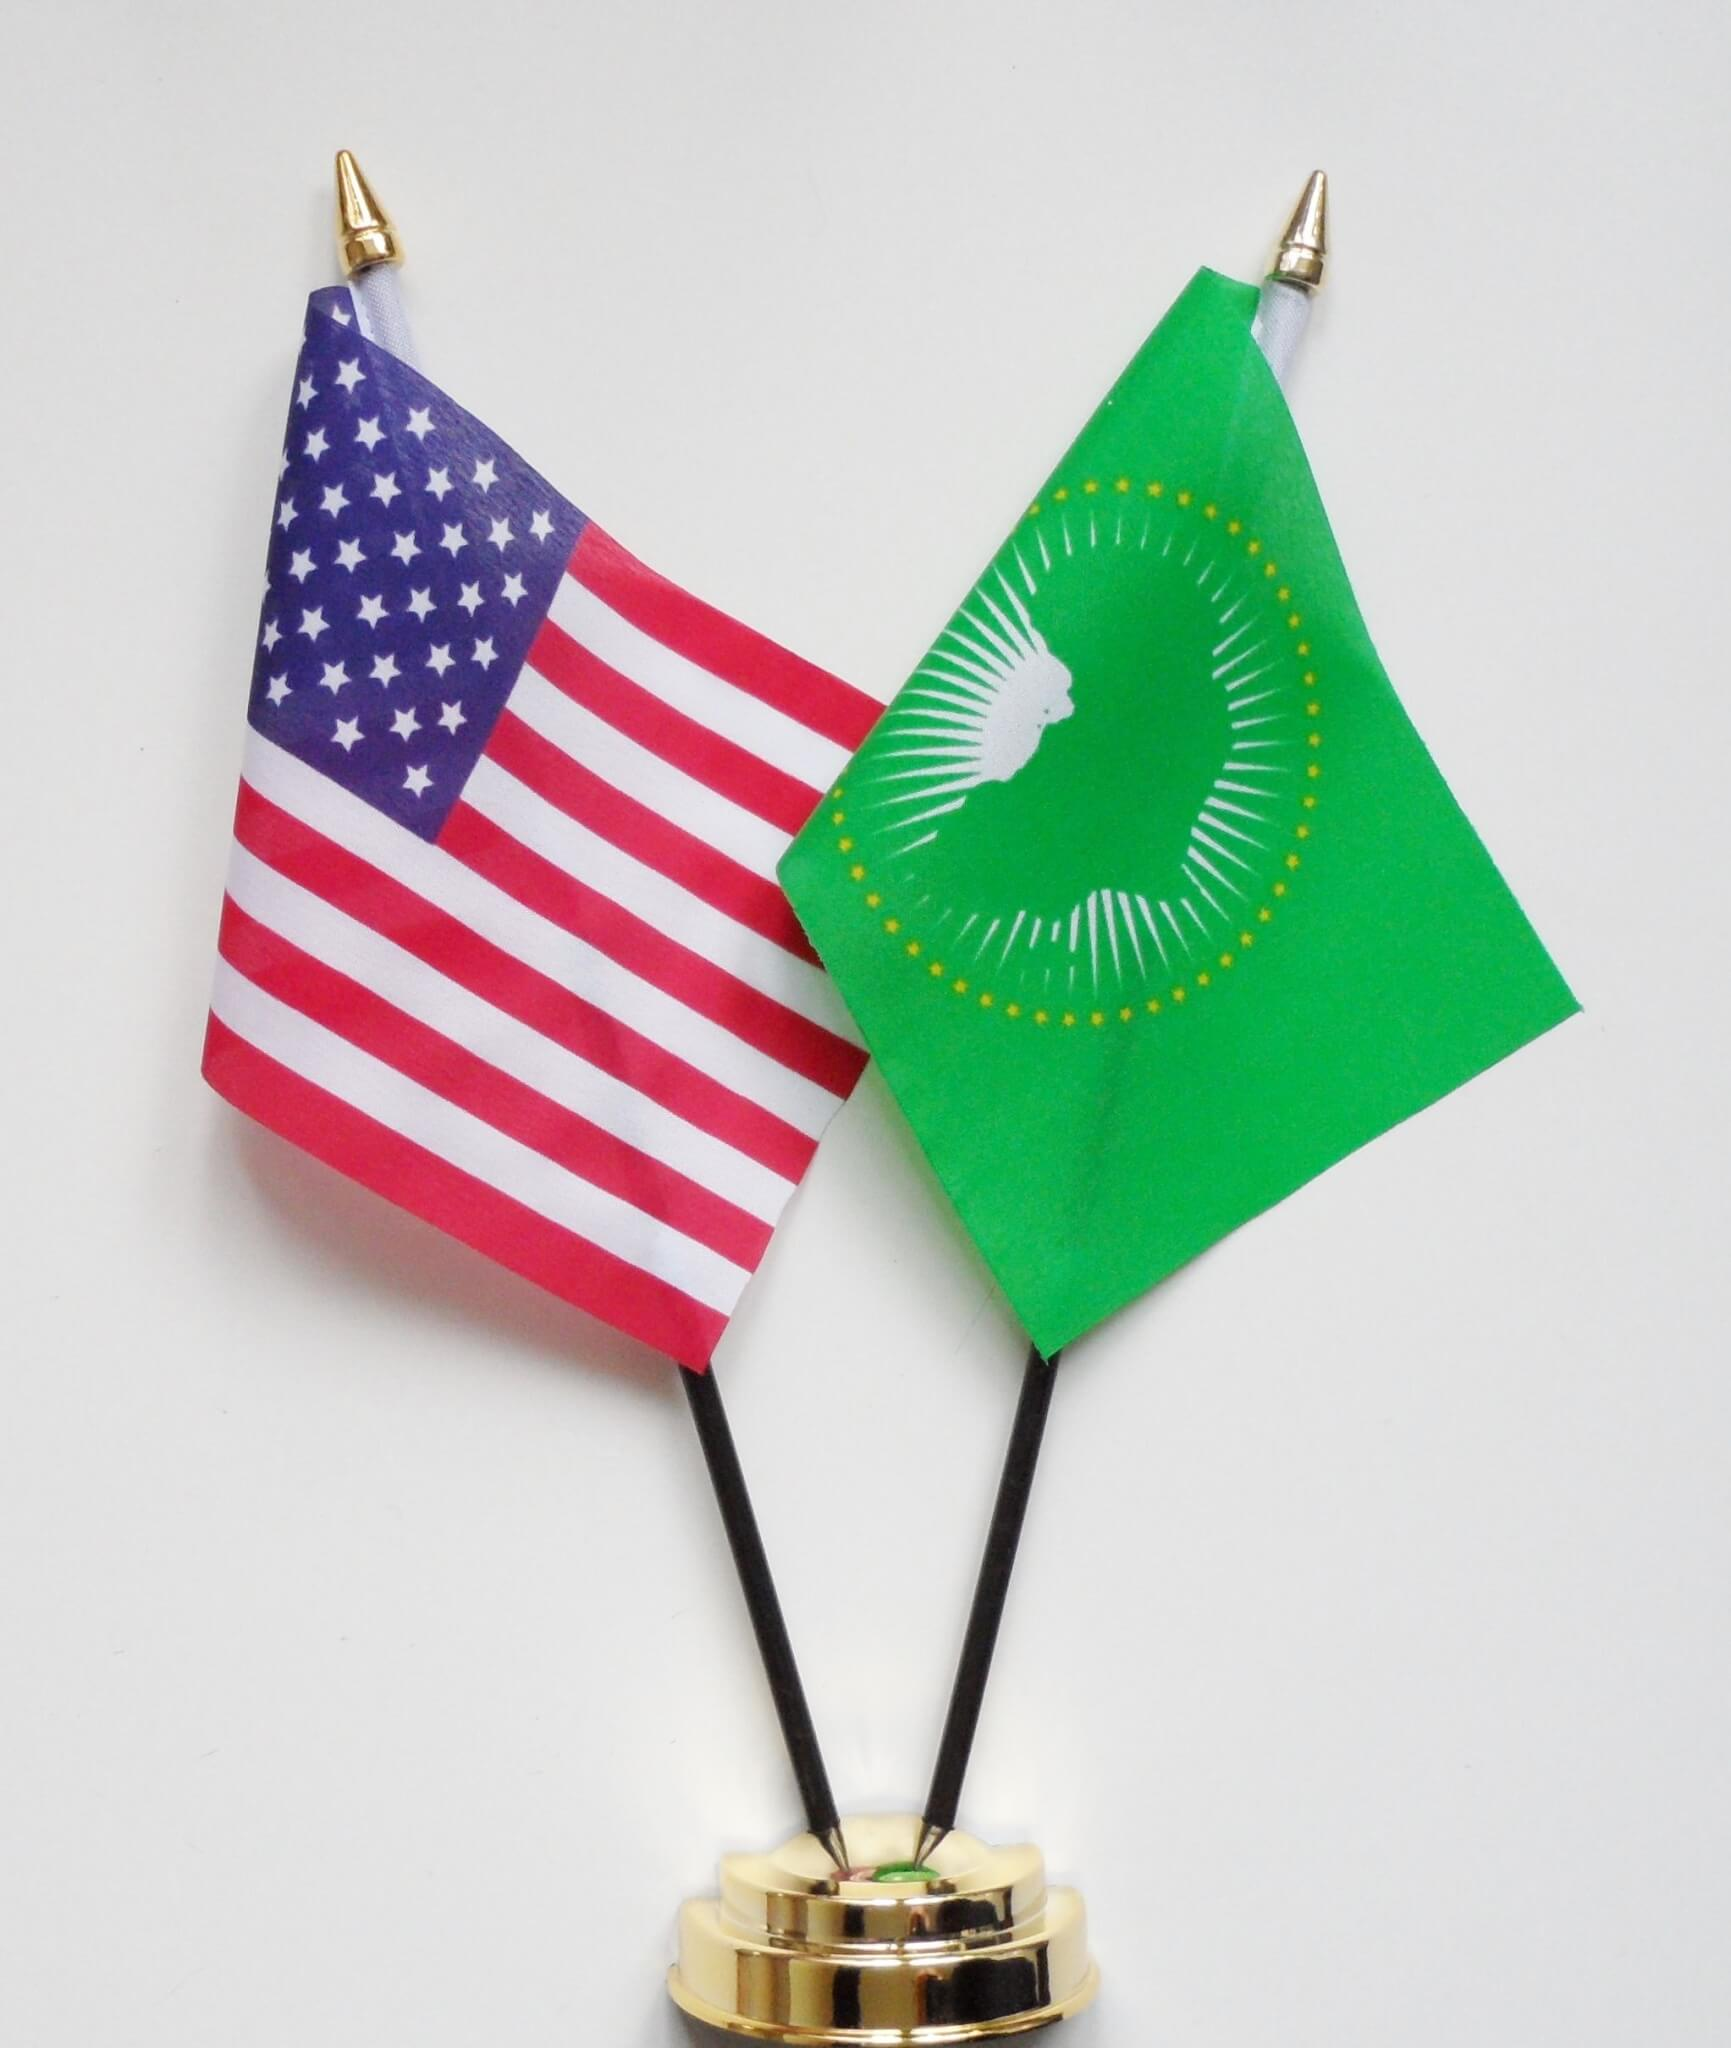 US and African Union: Partnership based on mutual interests and shared values